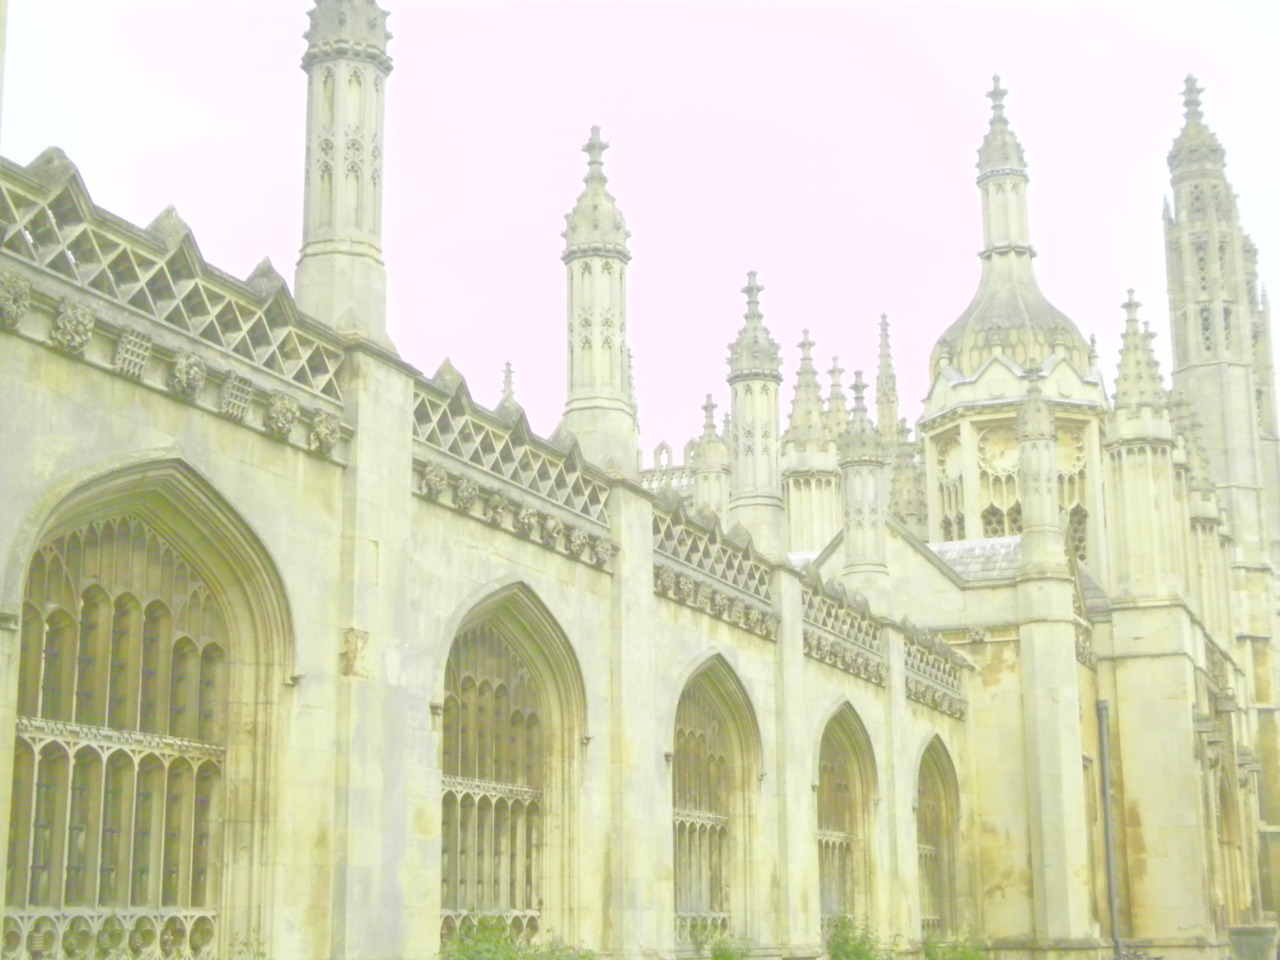 King's College | Cambridge, England